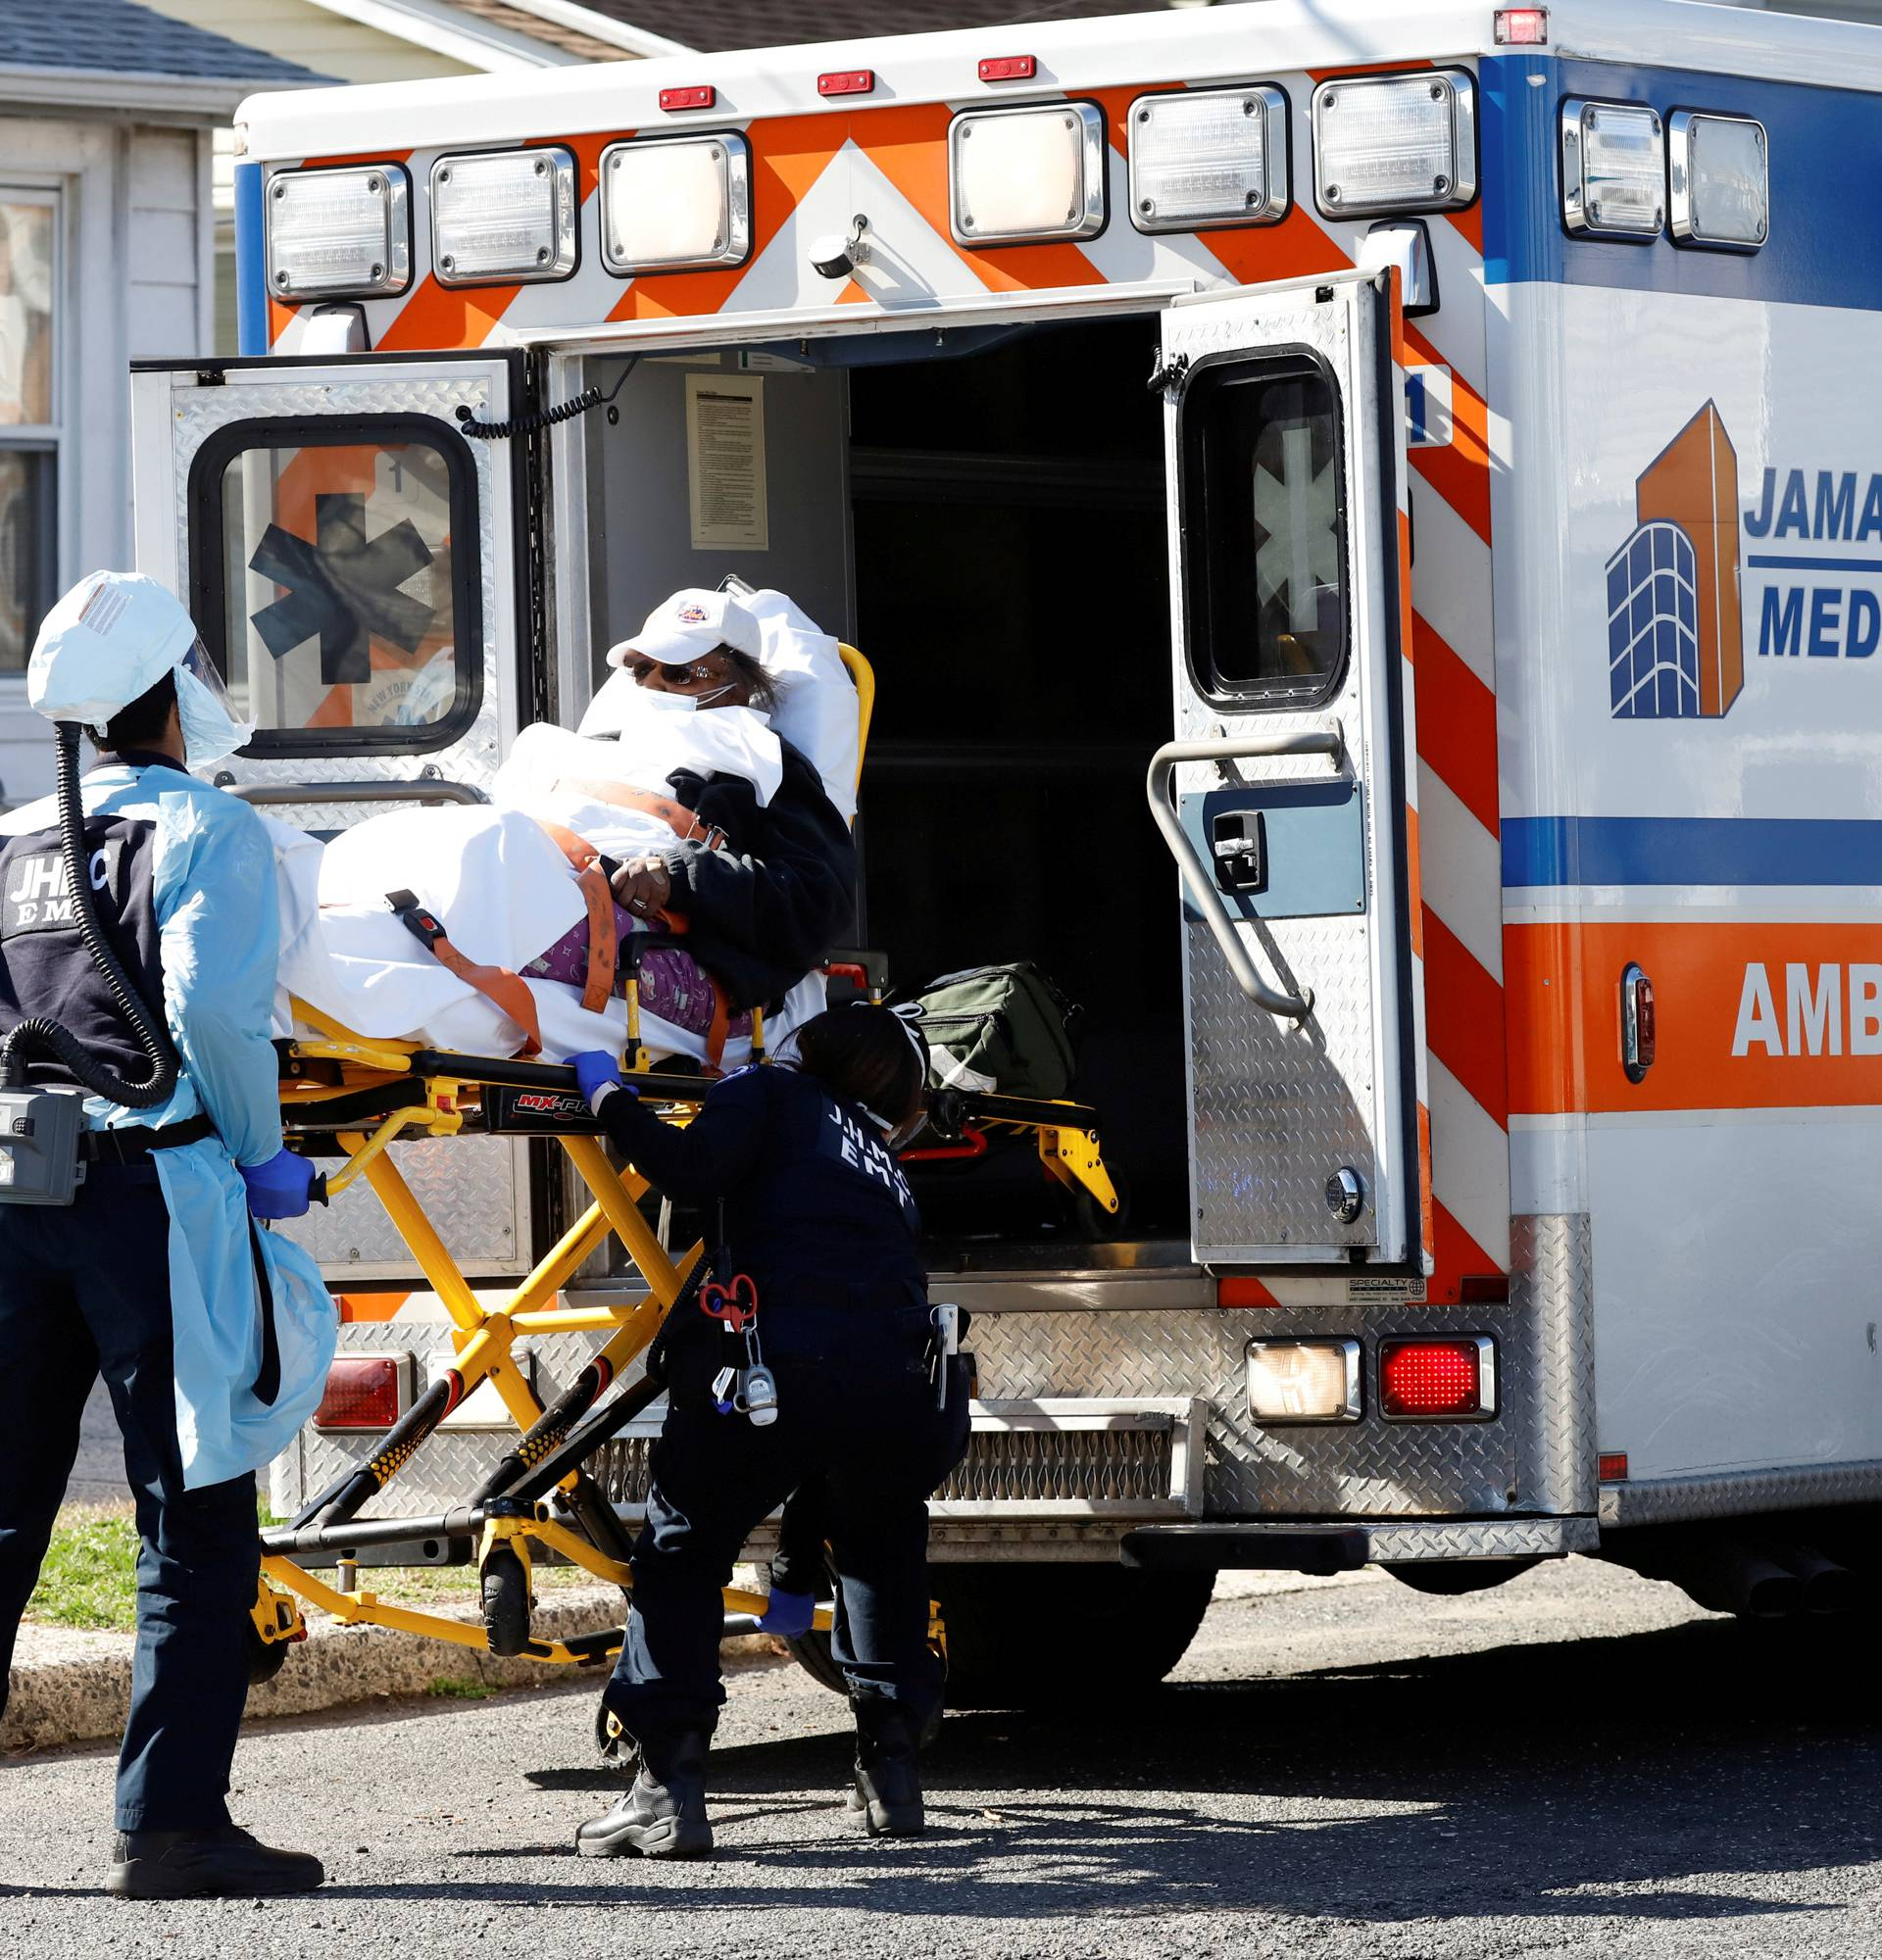 FILE PHOTO: Emergency Medical Technicians (EMT) lift a patient into an ambulance as the the outbreak of coronavirus disease (COVID-19) continues, in New York